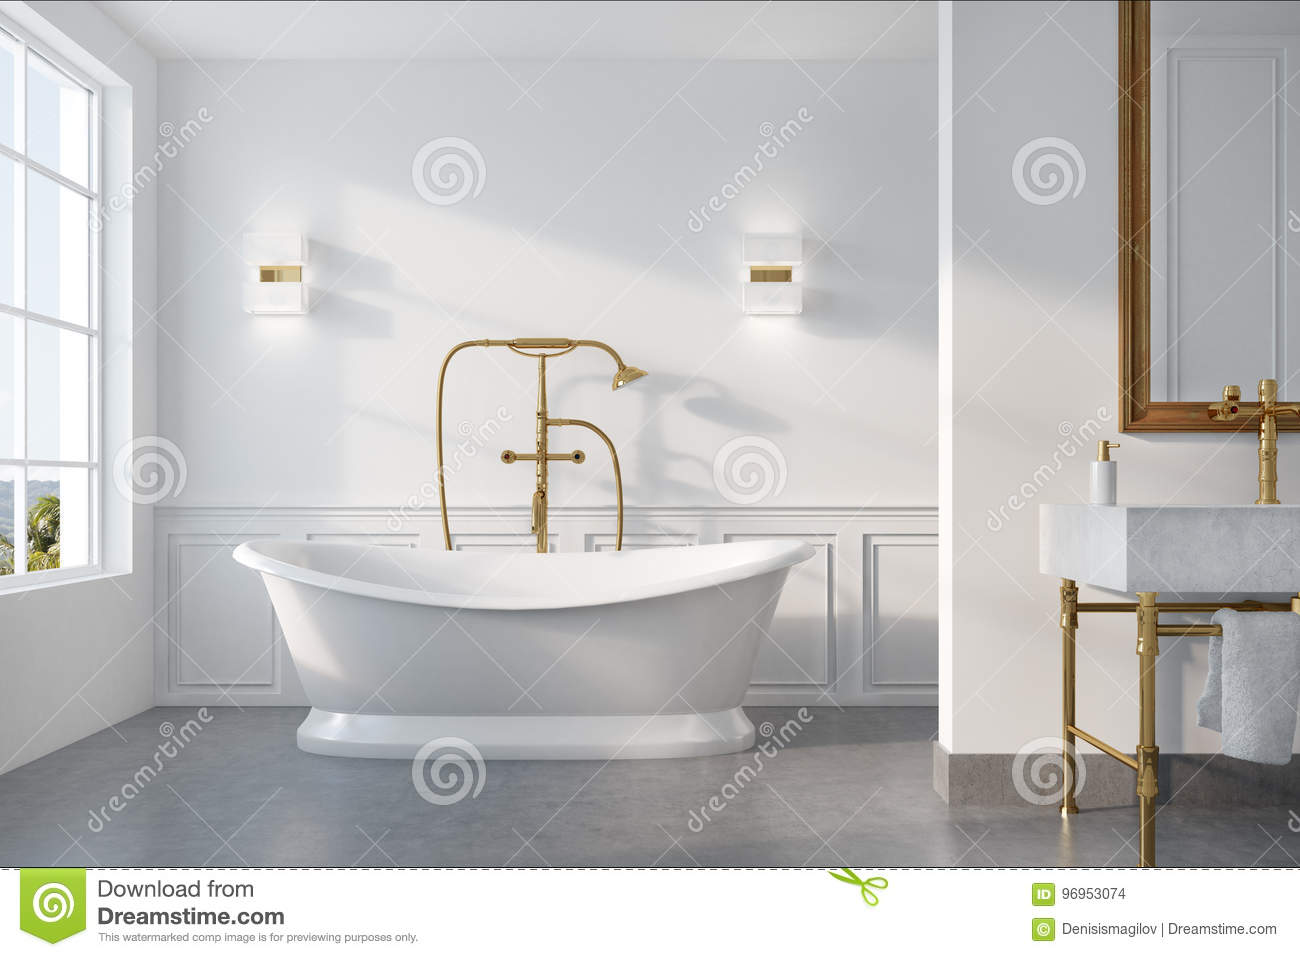 Vintage Bathroom Interior, White Tub Stock Illustration ...